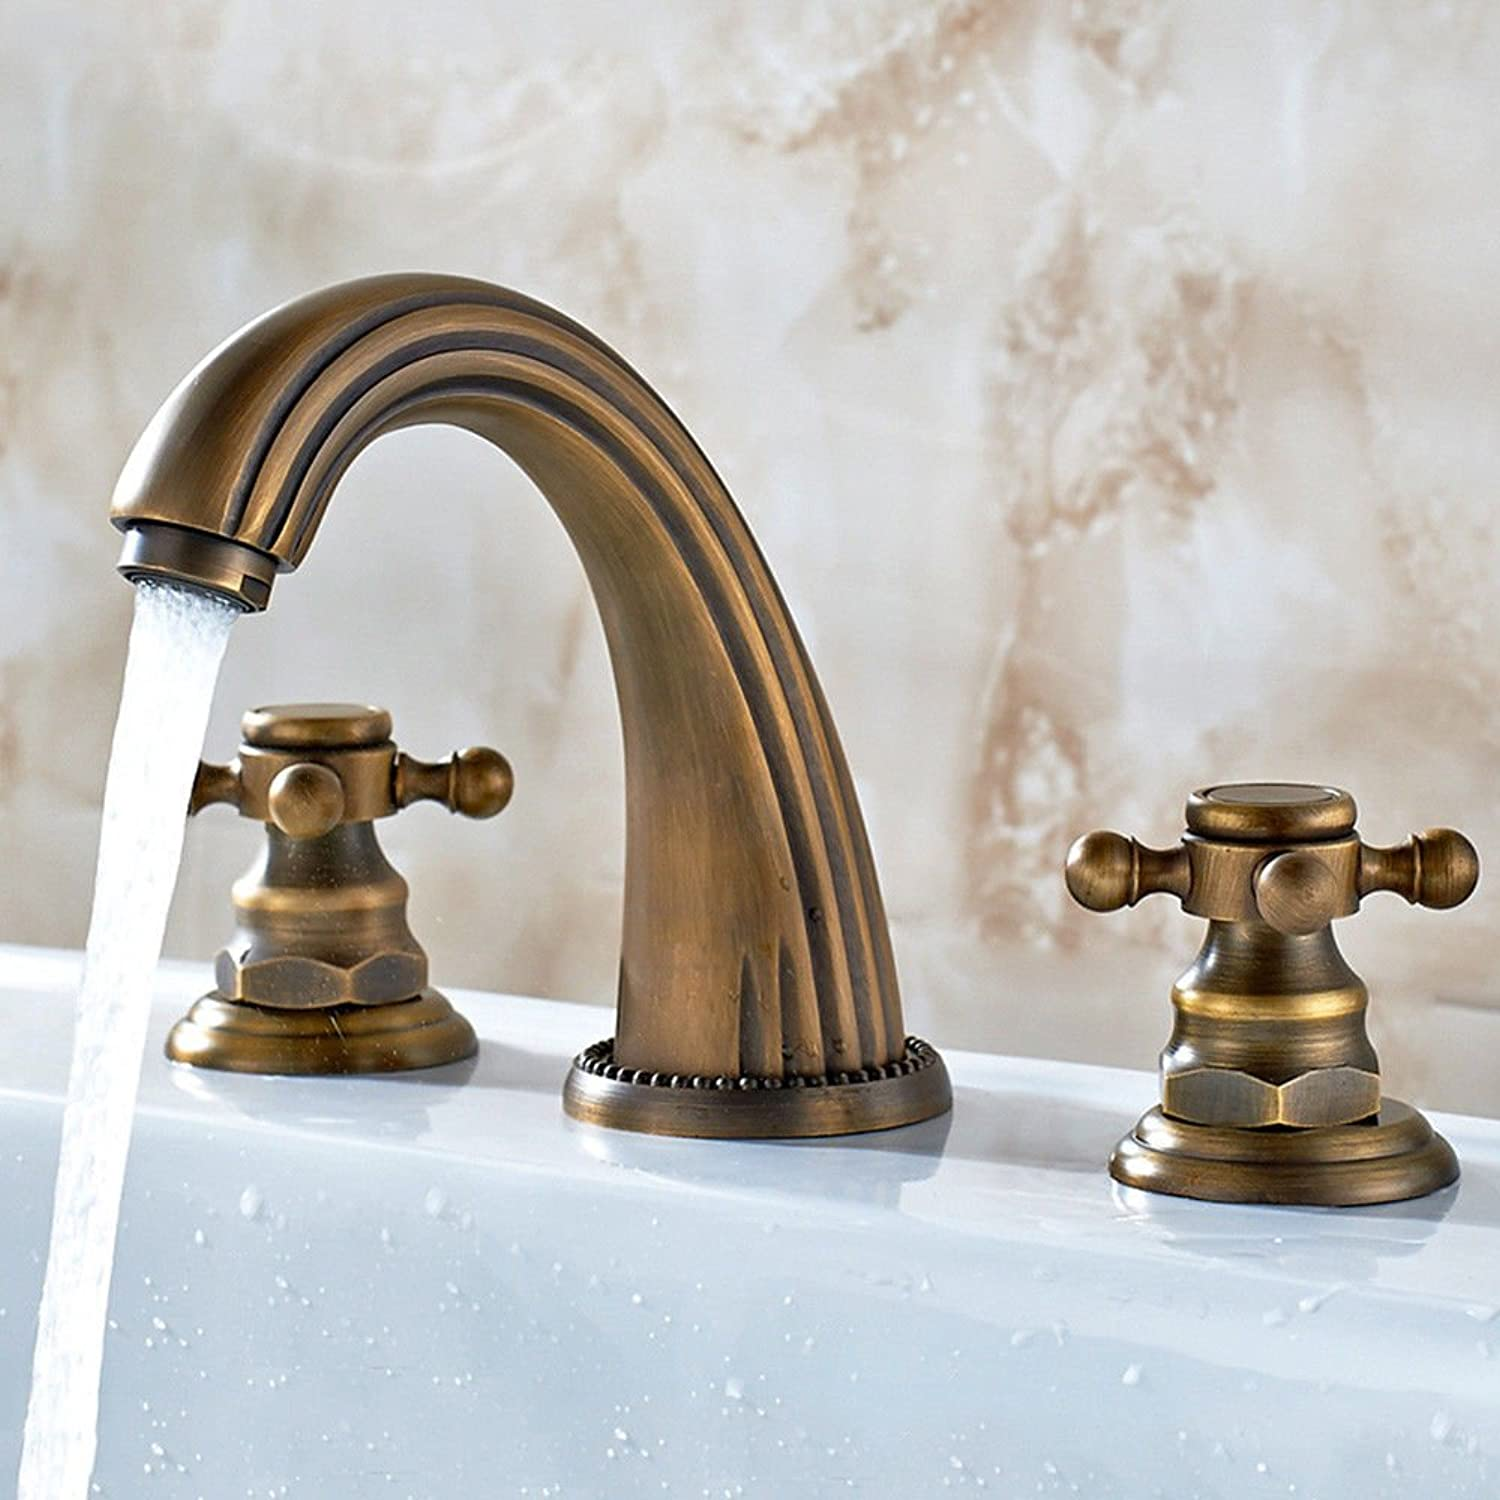 Lpophy Bathroom Sink Mixer Taps Faucet Bath Waterfall Cold and Hot Water Tap for Washroom Bathroom and Kitchen Copper Hot and Cold Split Antique Cross Three Holes A